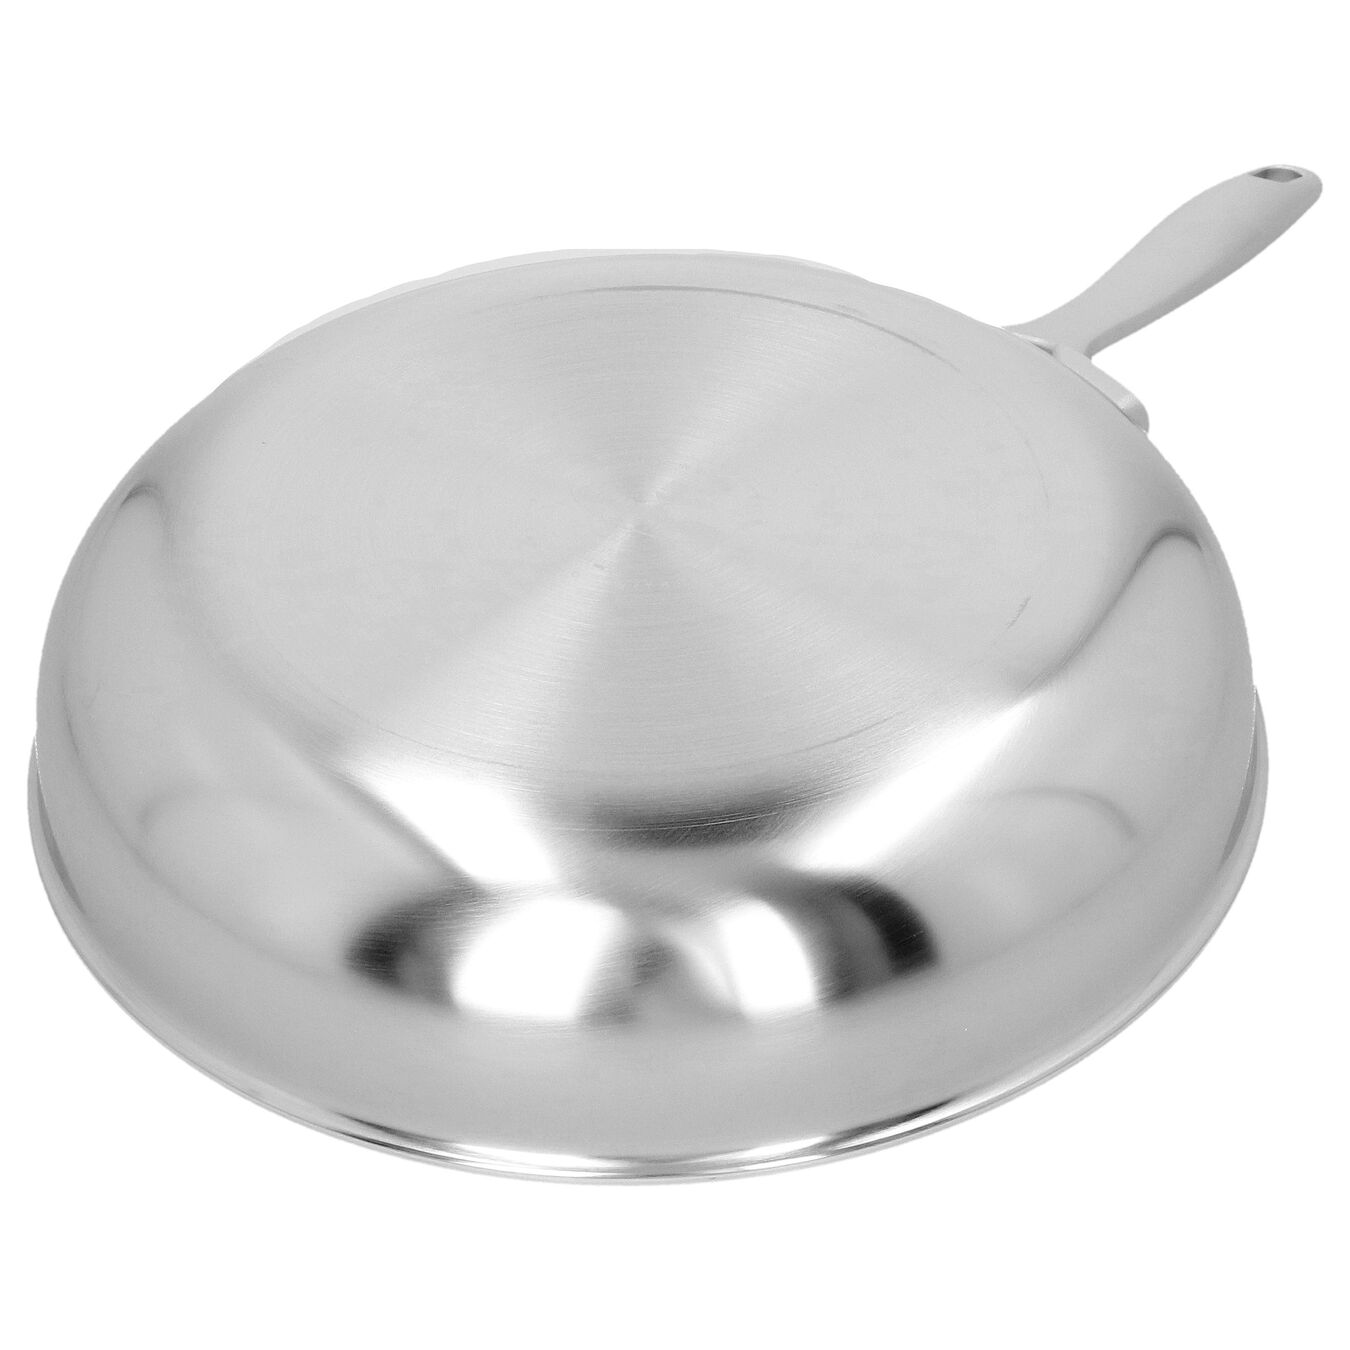 24 cm / 9.5 inch Frying pan,,large 4